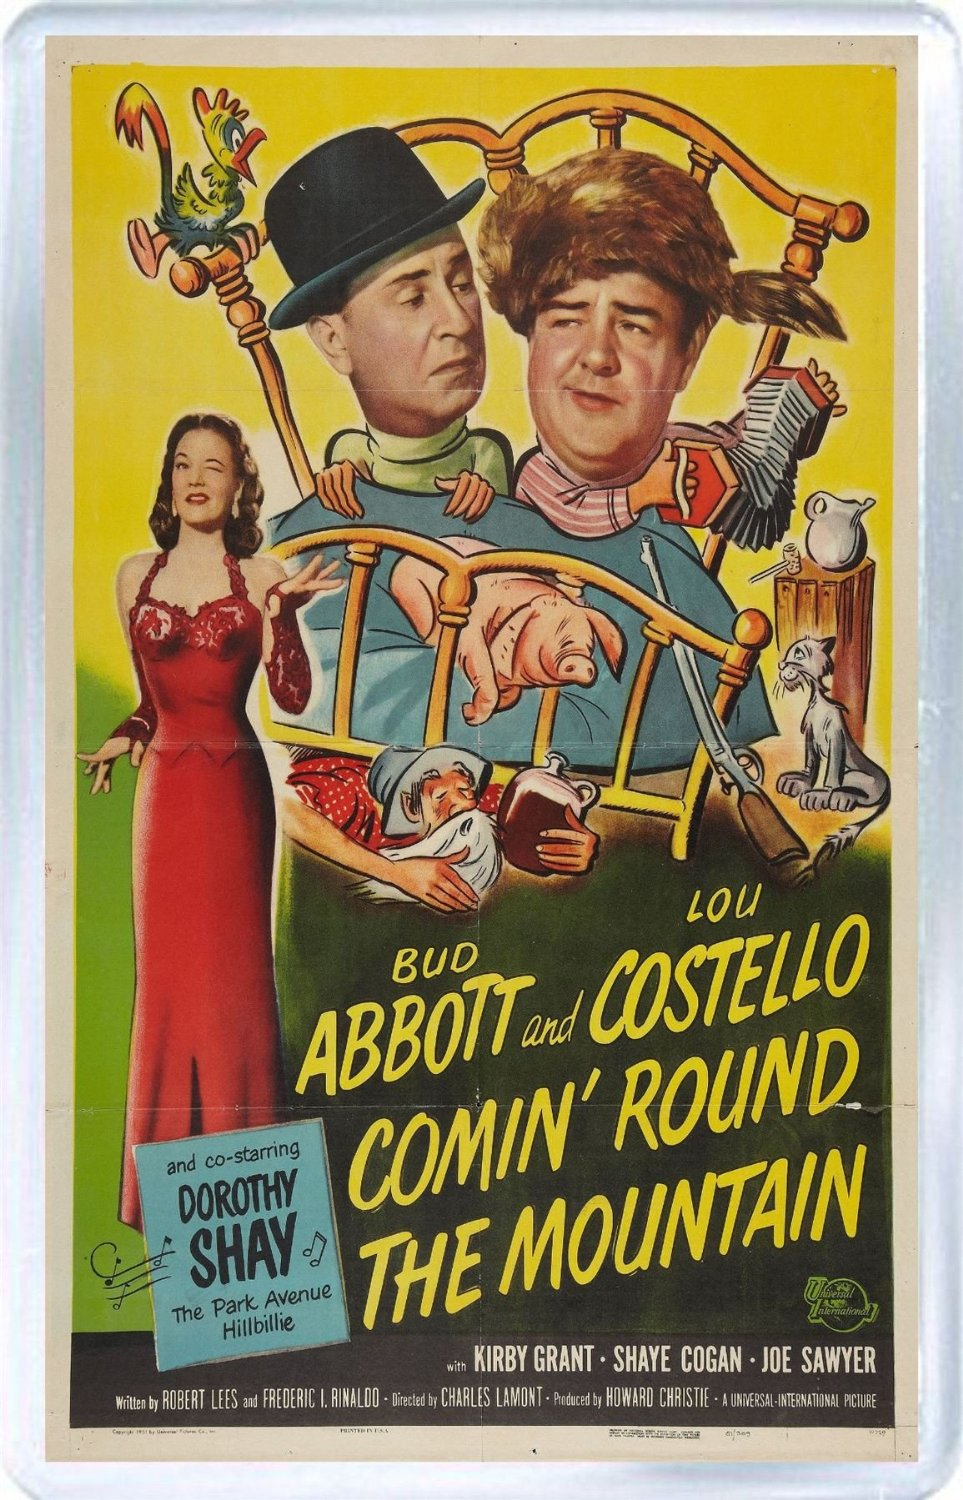 Comin' Round the Mountain, starring Abbott and Costello, Dorothy Shay, Margaret Hamilton